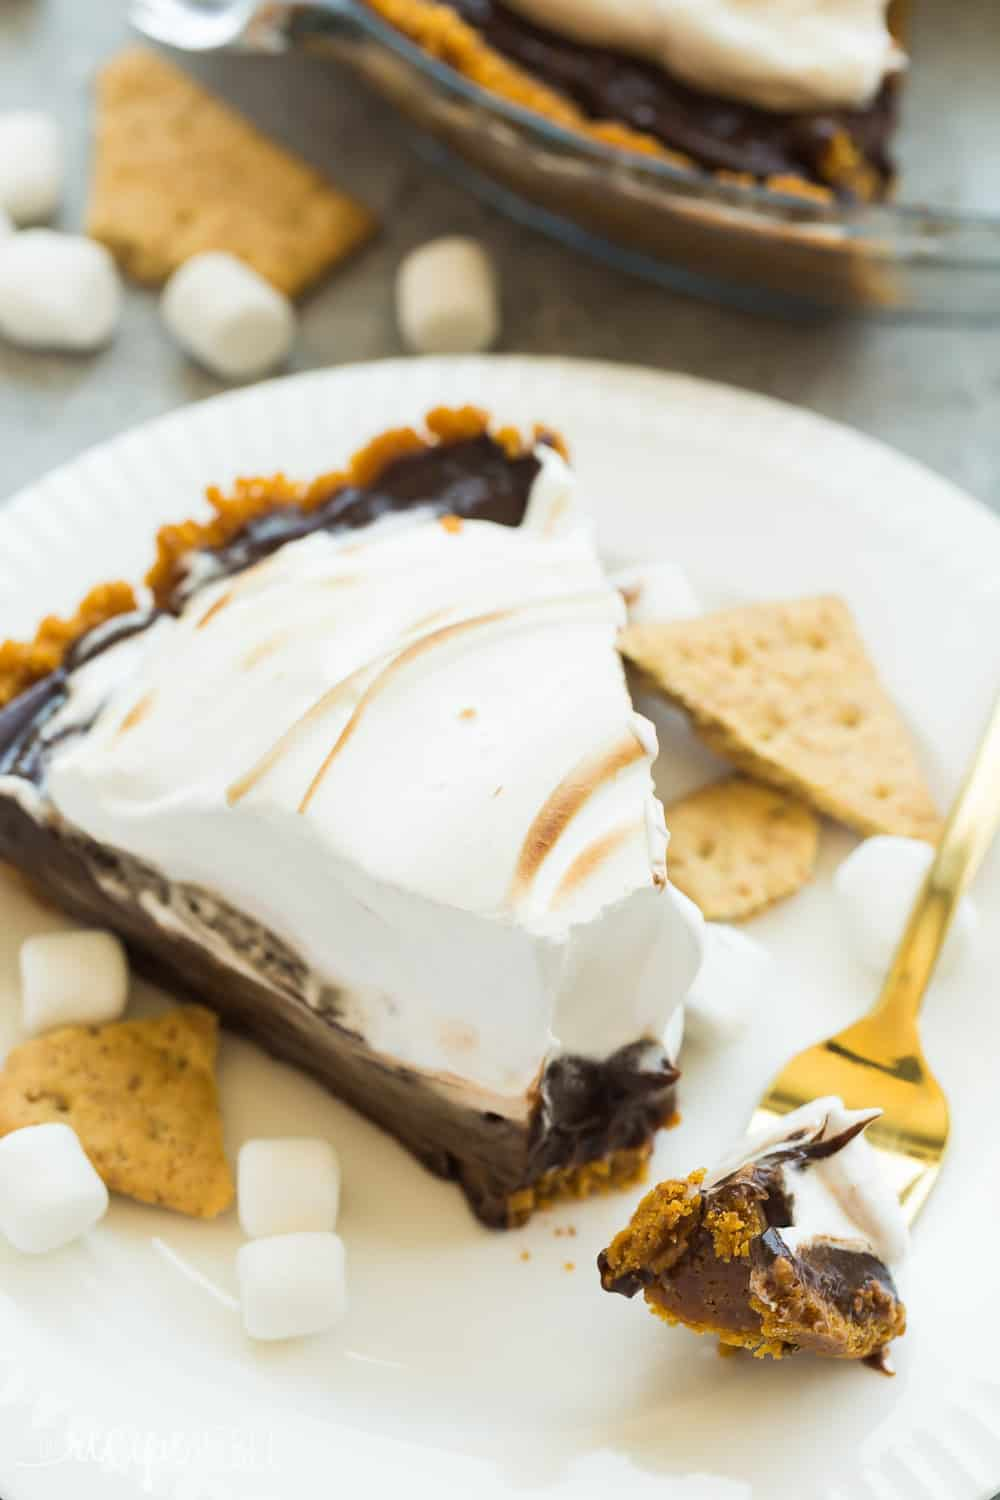 This No Bake S'mores Pie is the easiest summer dessert! A graham cracker crust is loaded with chocolate filling and topped with marshmallow cream!